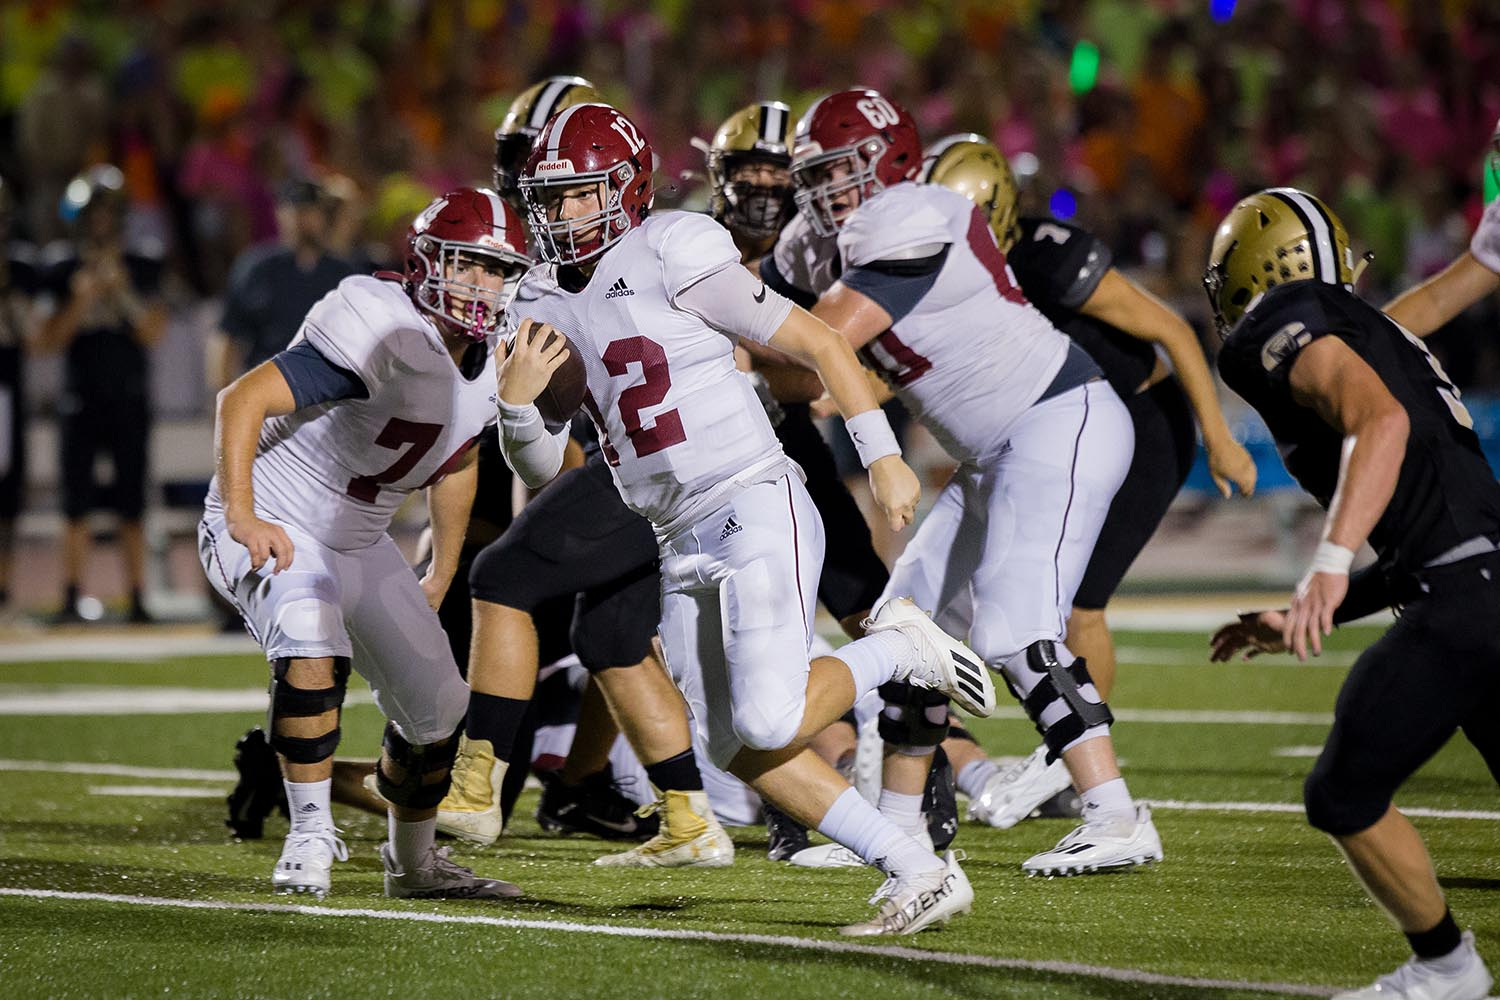 ASWA Prep Football Rankings: Hartselle moves up to 5th in 6A